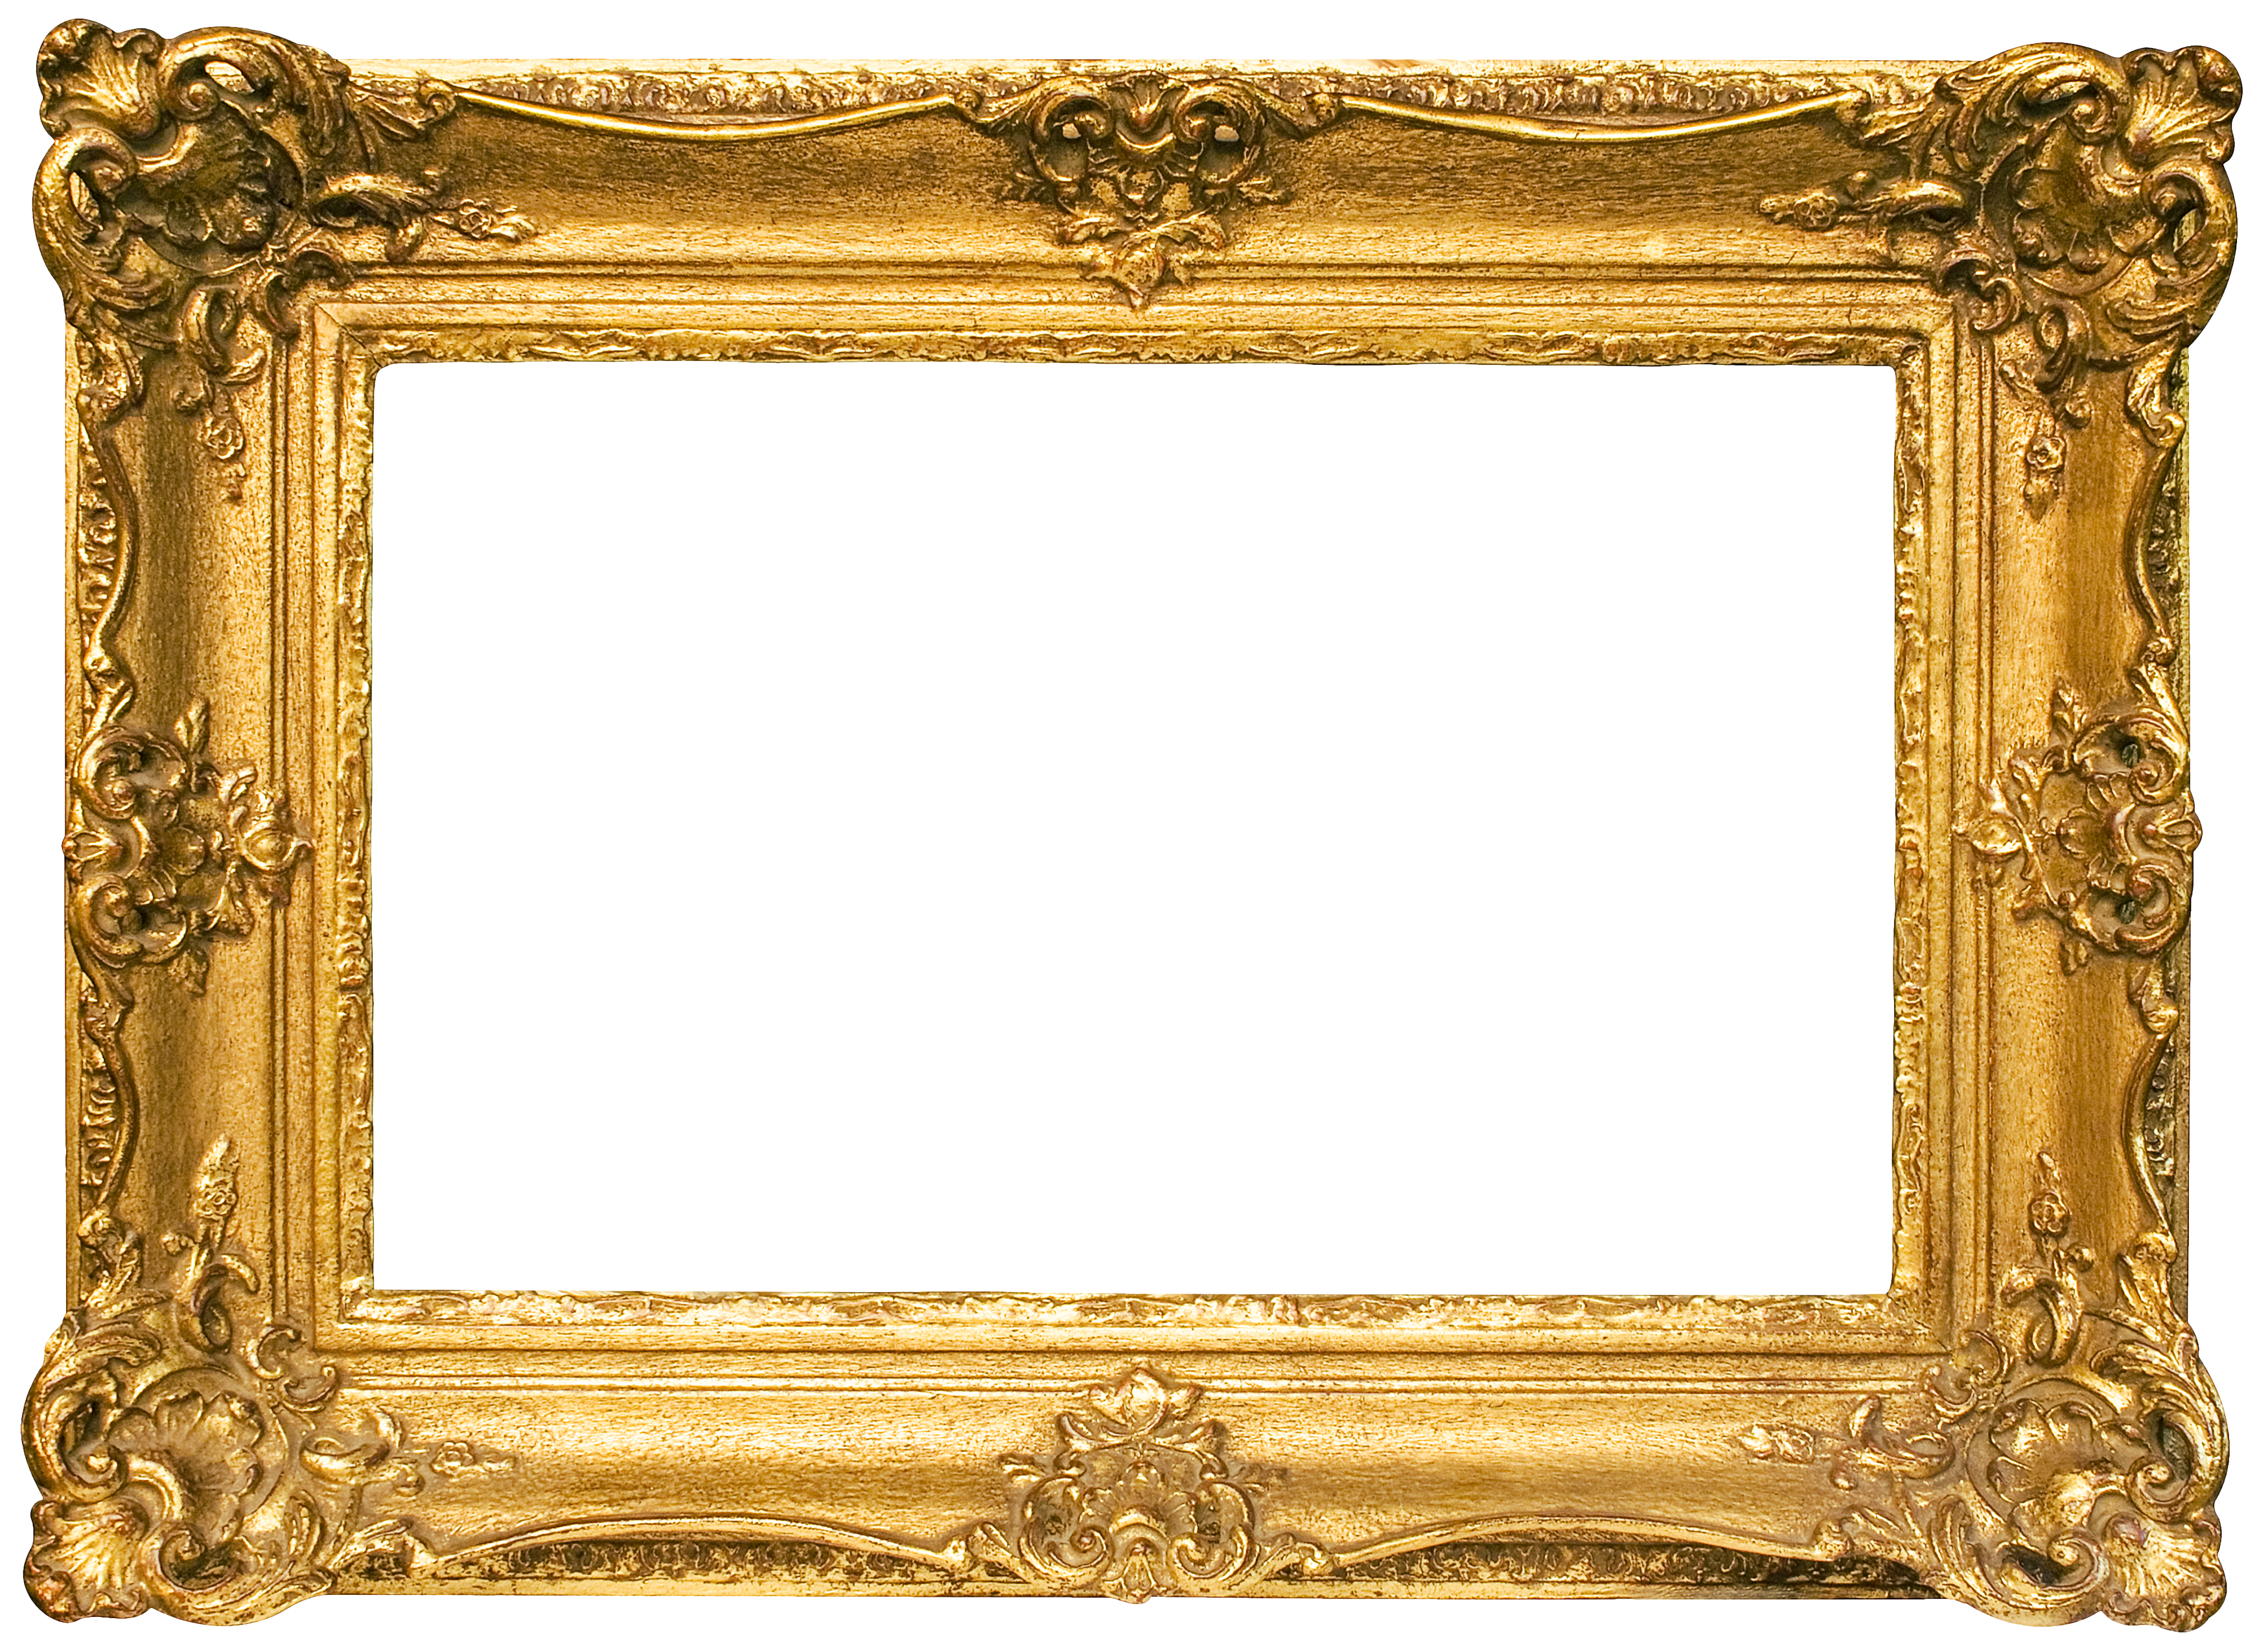 Gold frame png. Classic transparent image gallery